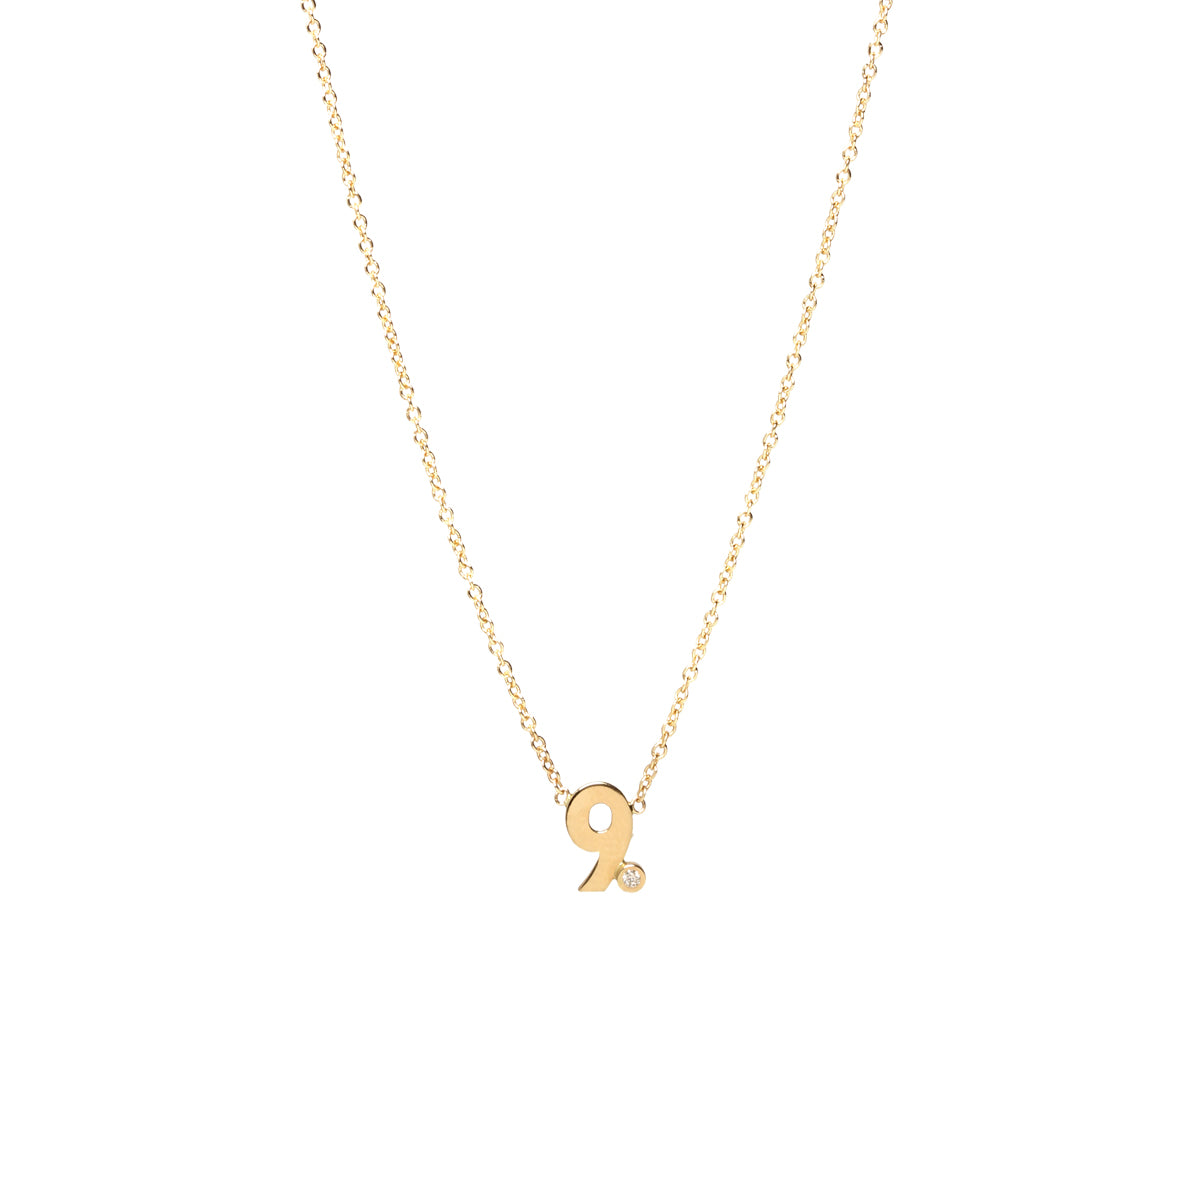 Zoë Chicco 14kt Yellow Gold White Diamond Number Necklace